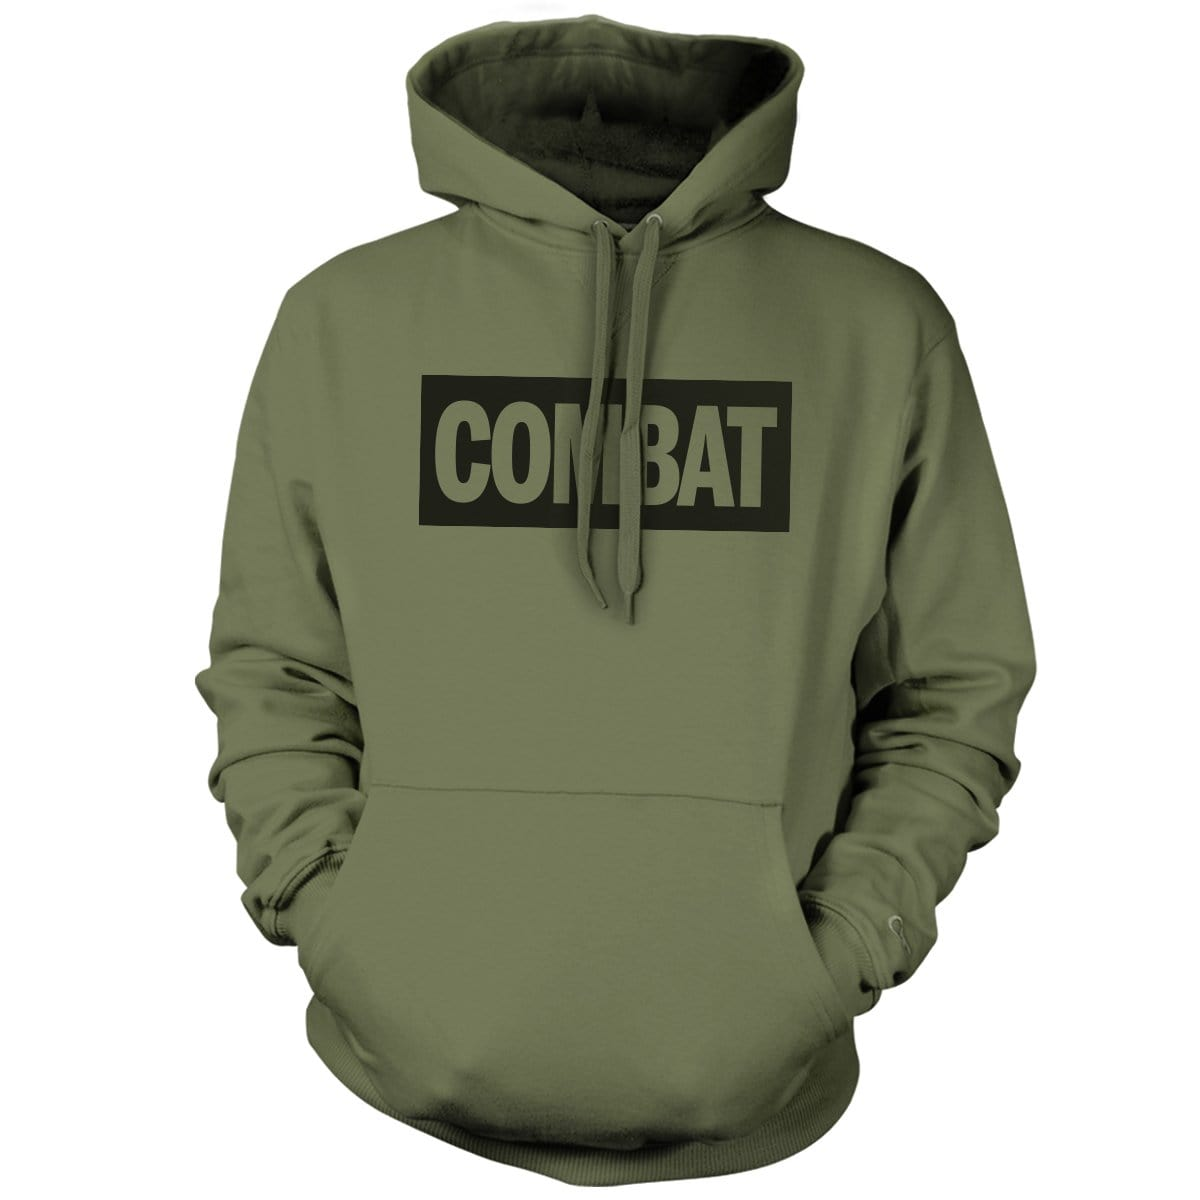 Combat Hoodie - Military Green - Hoodies - Pipe Hitters Union